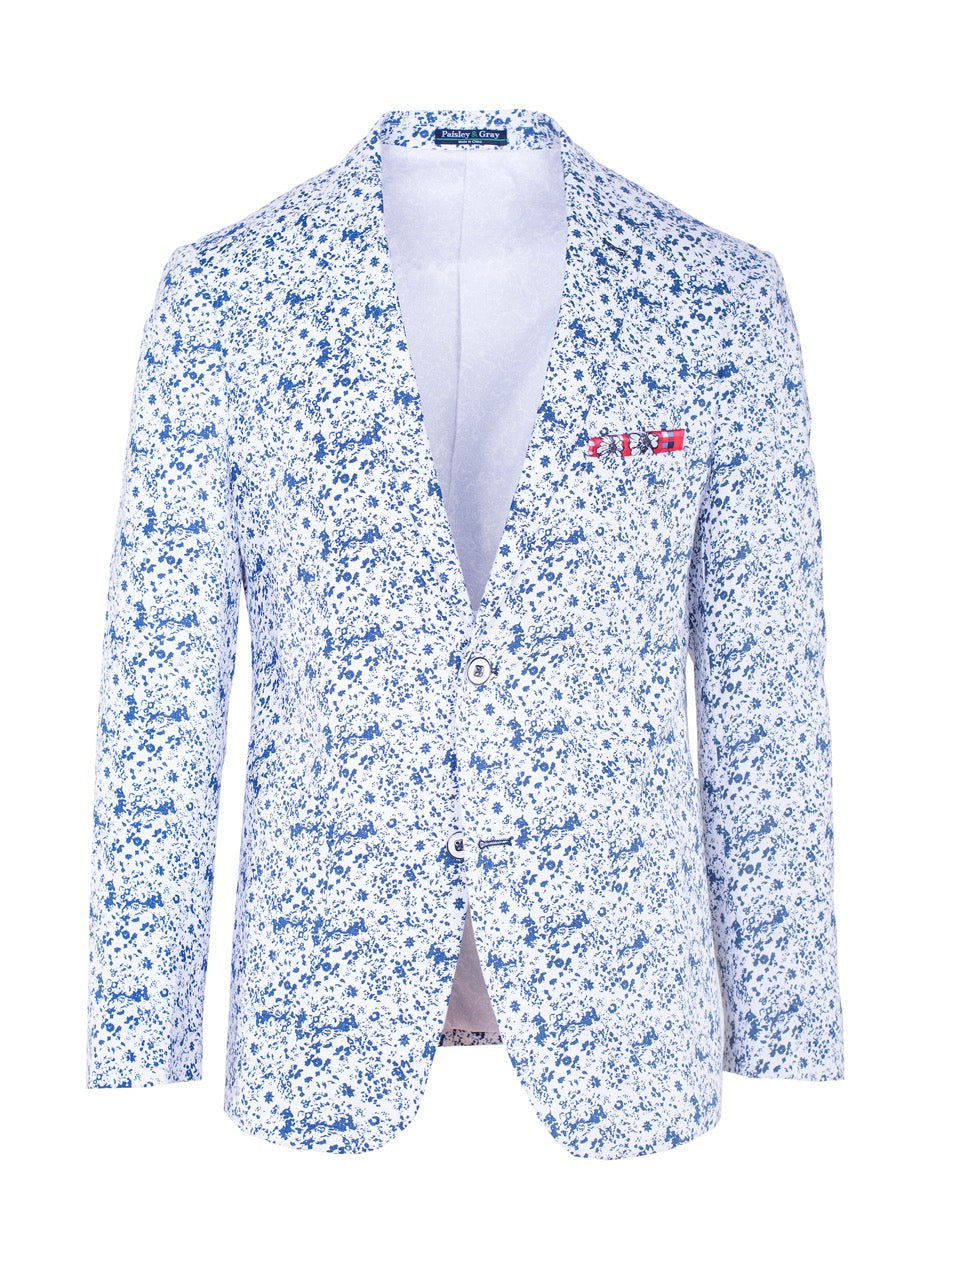 Dover Notch Blazer - White & Blue floral